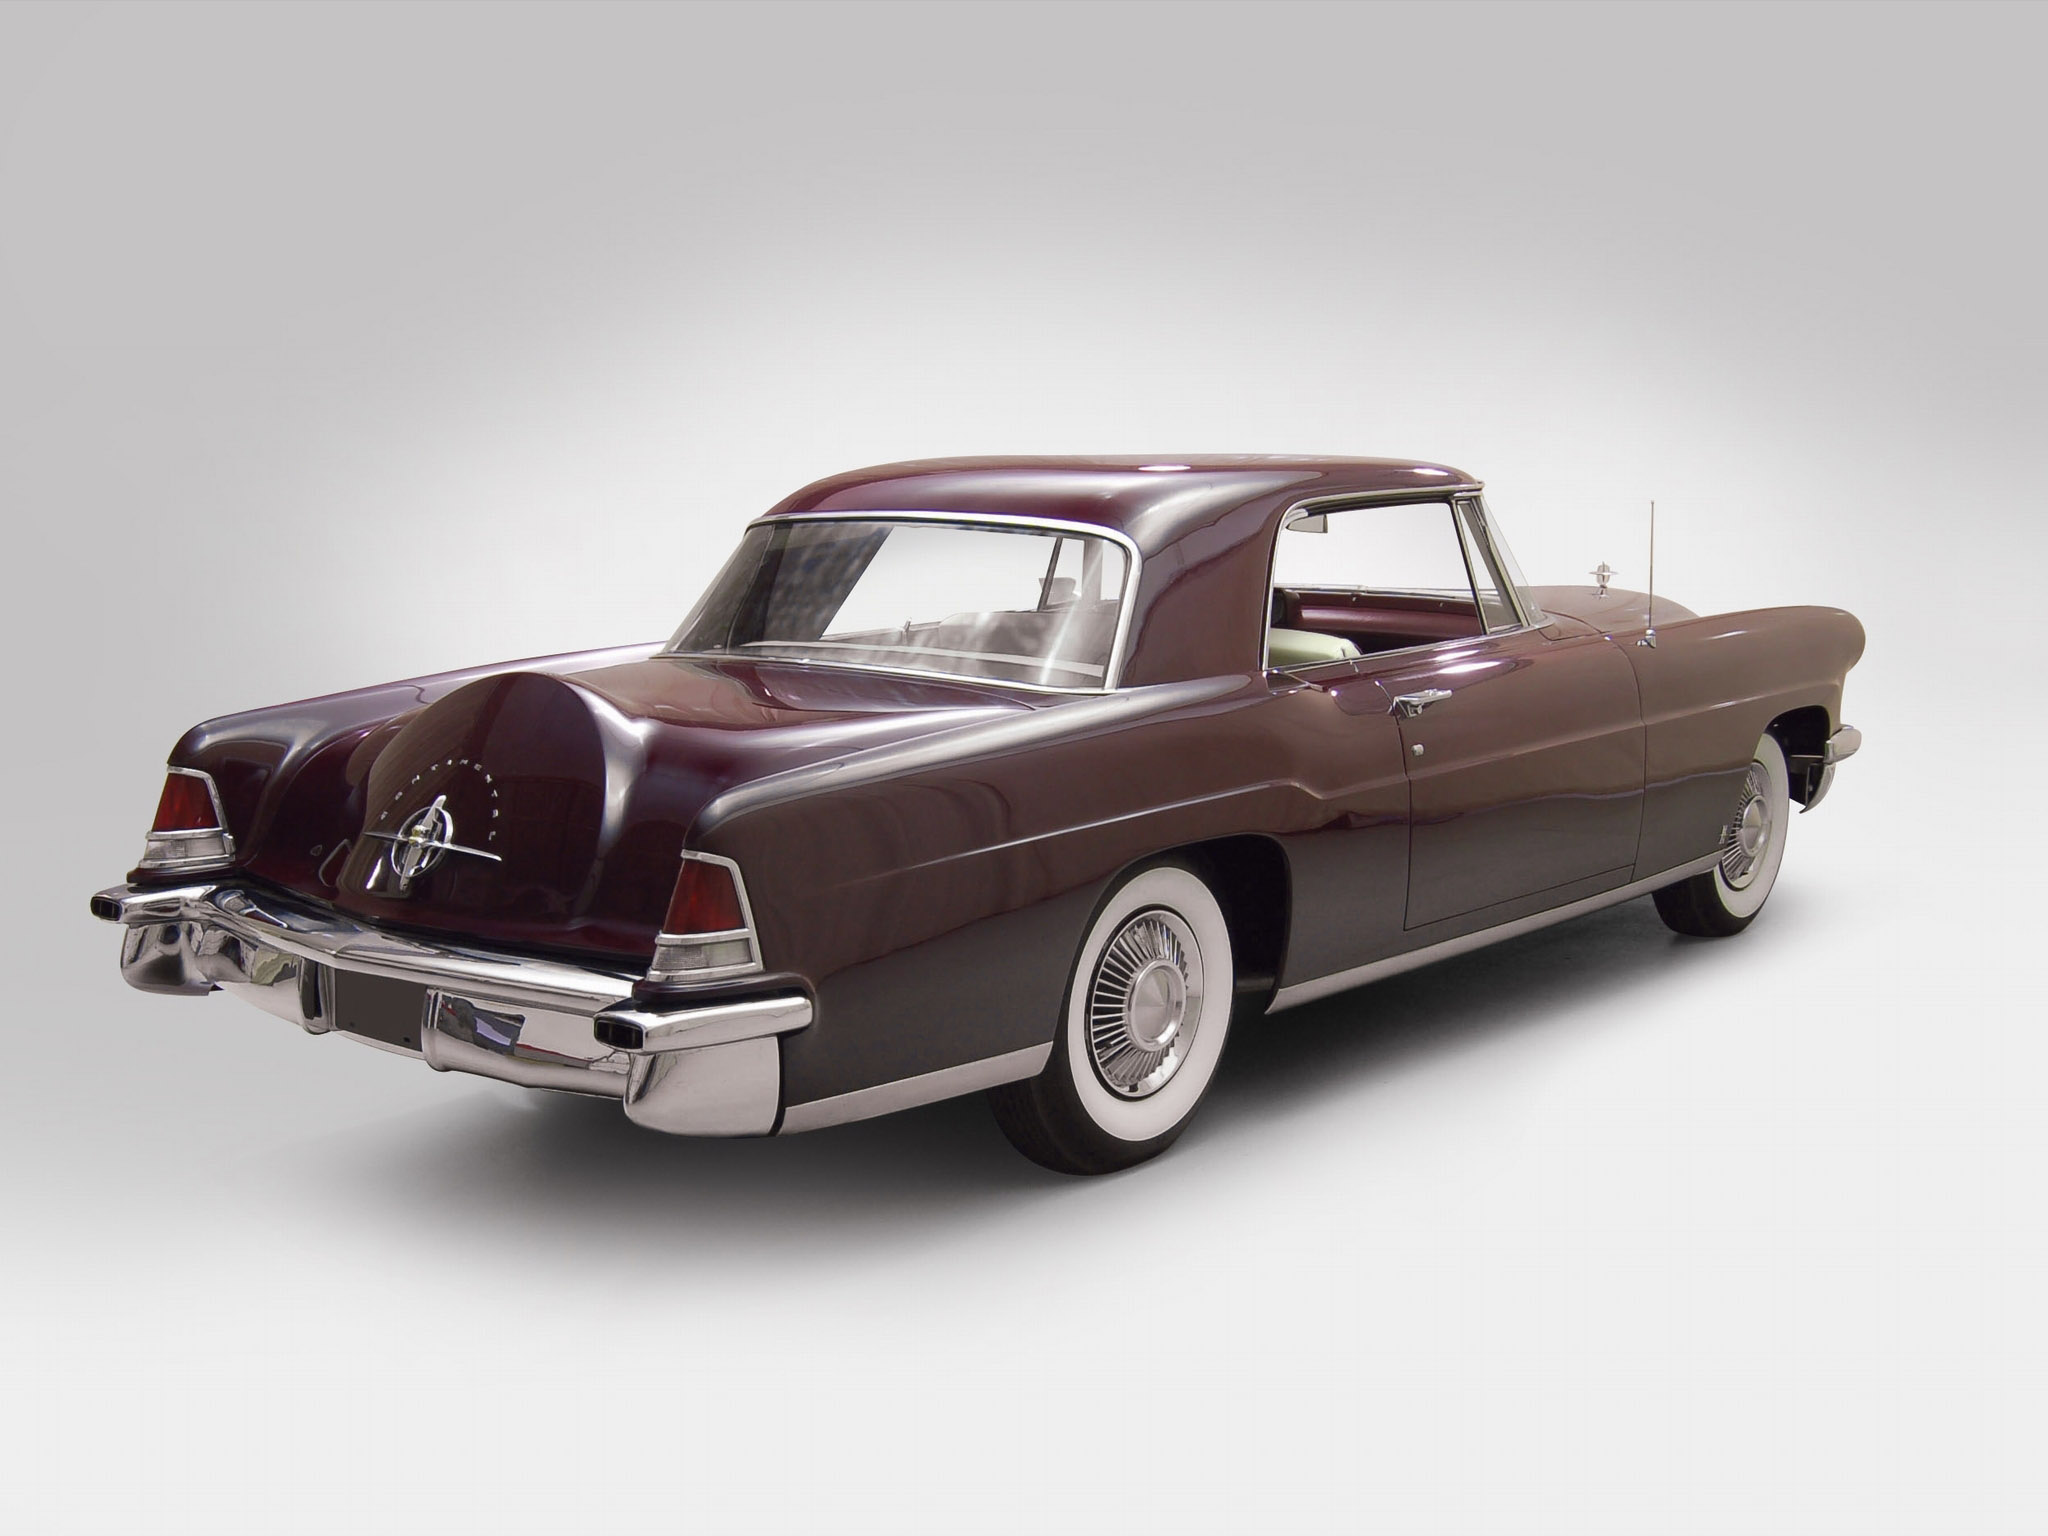 lincoln continental mark ii 1956 1957 lincoln continental mark ii 1956 1957 photo 14 car in. Black Bedroom Furniture Sets. Home Design Ideas